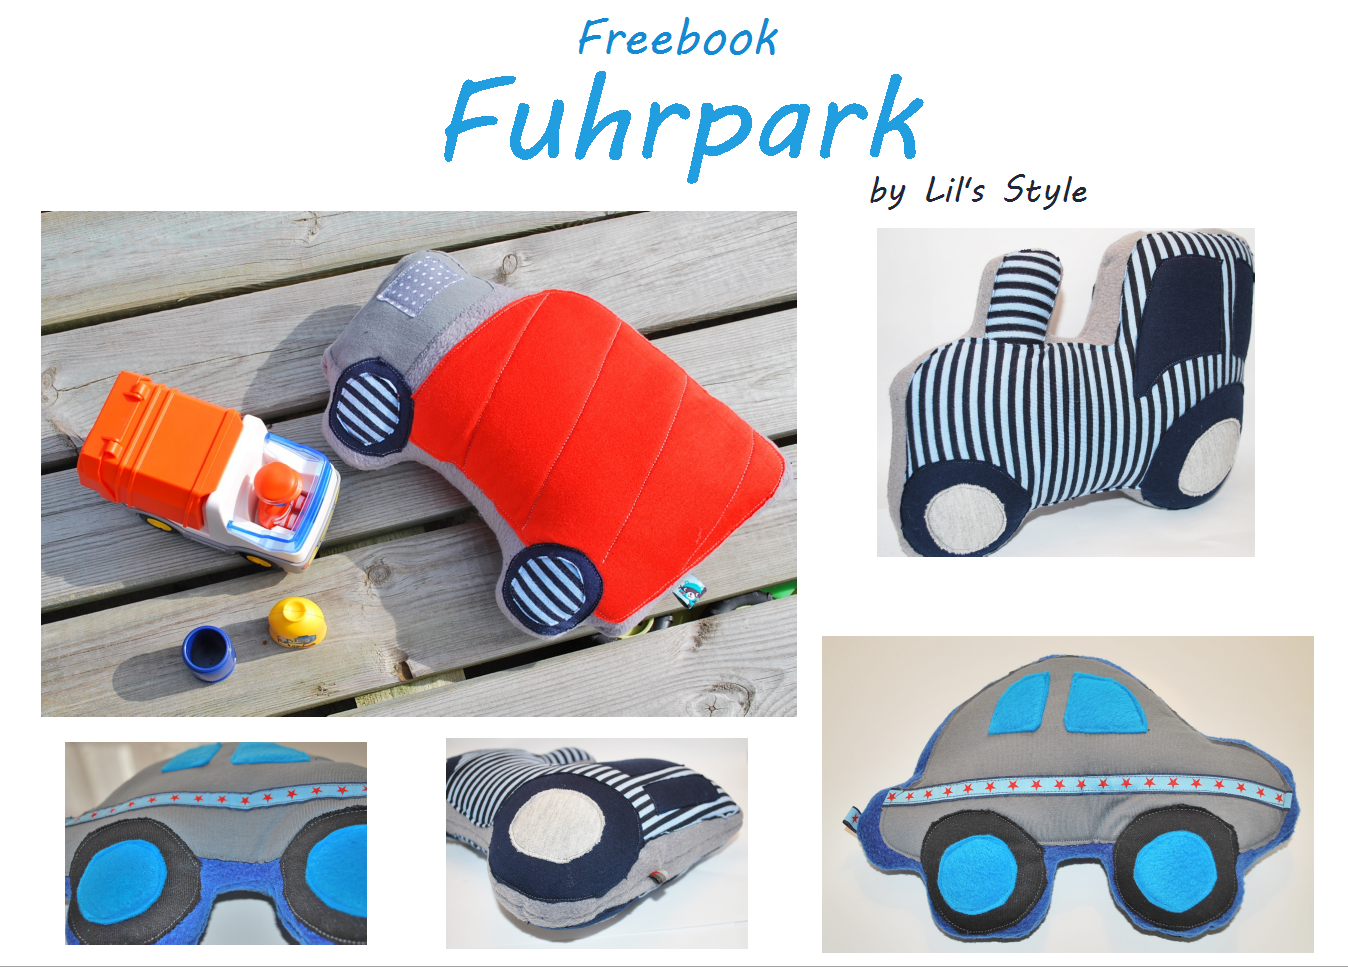 Freebook: Fuhrpark